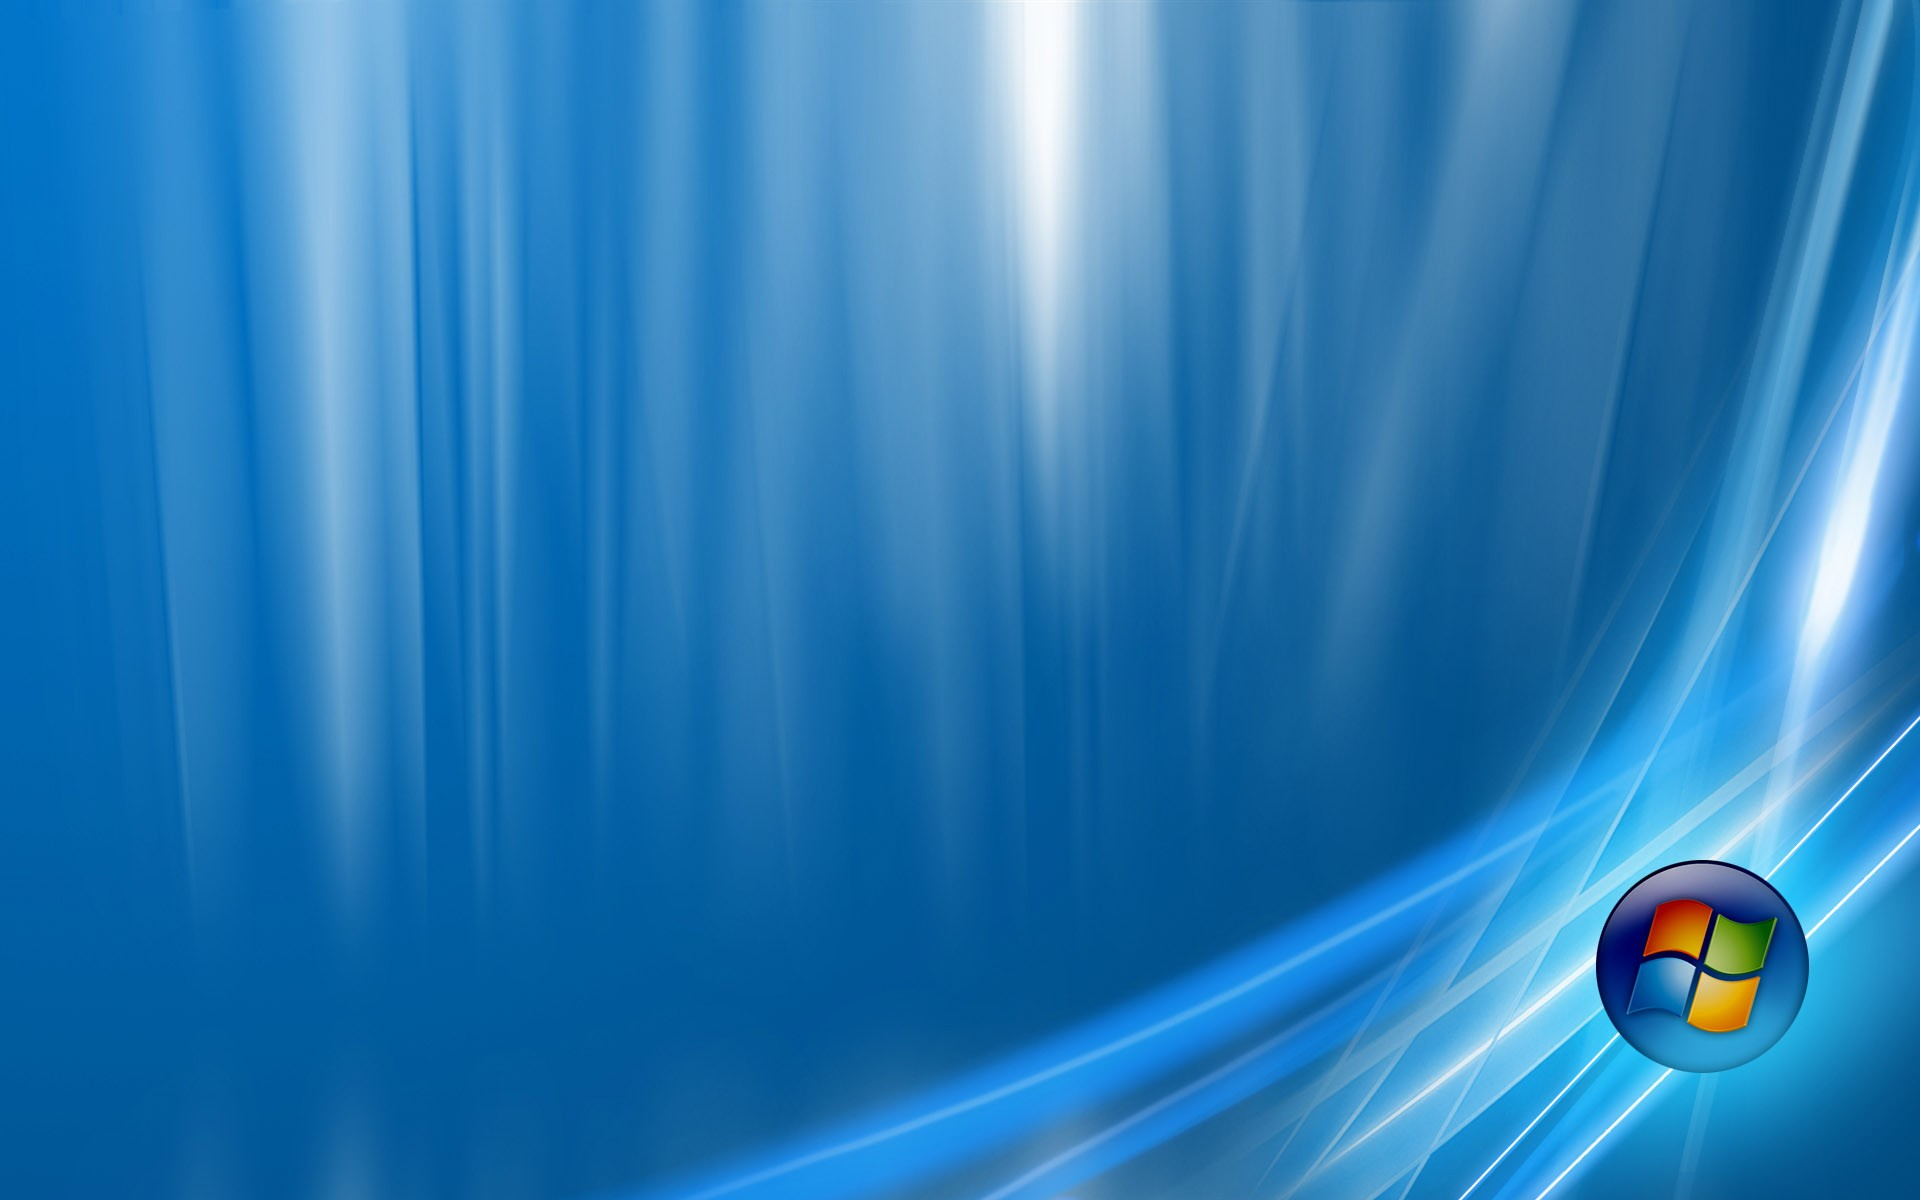 computer background ·① download free backgrounds for desktop